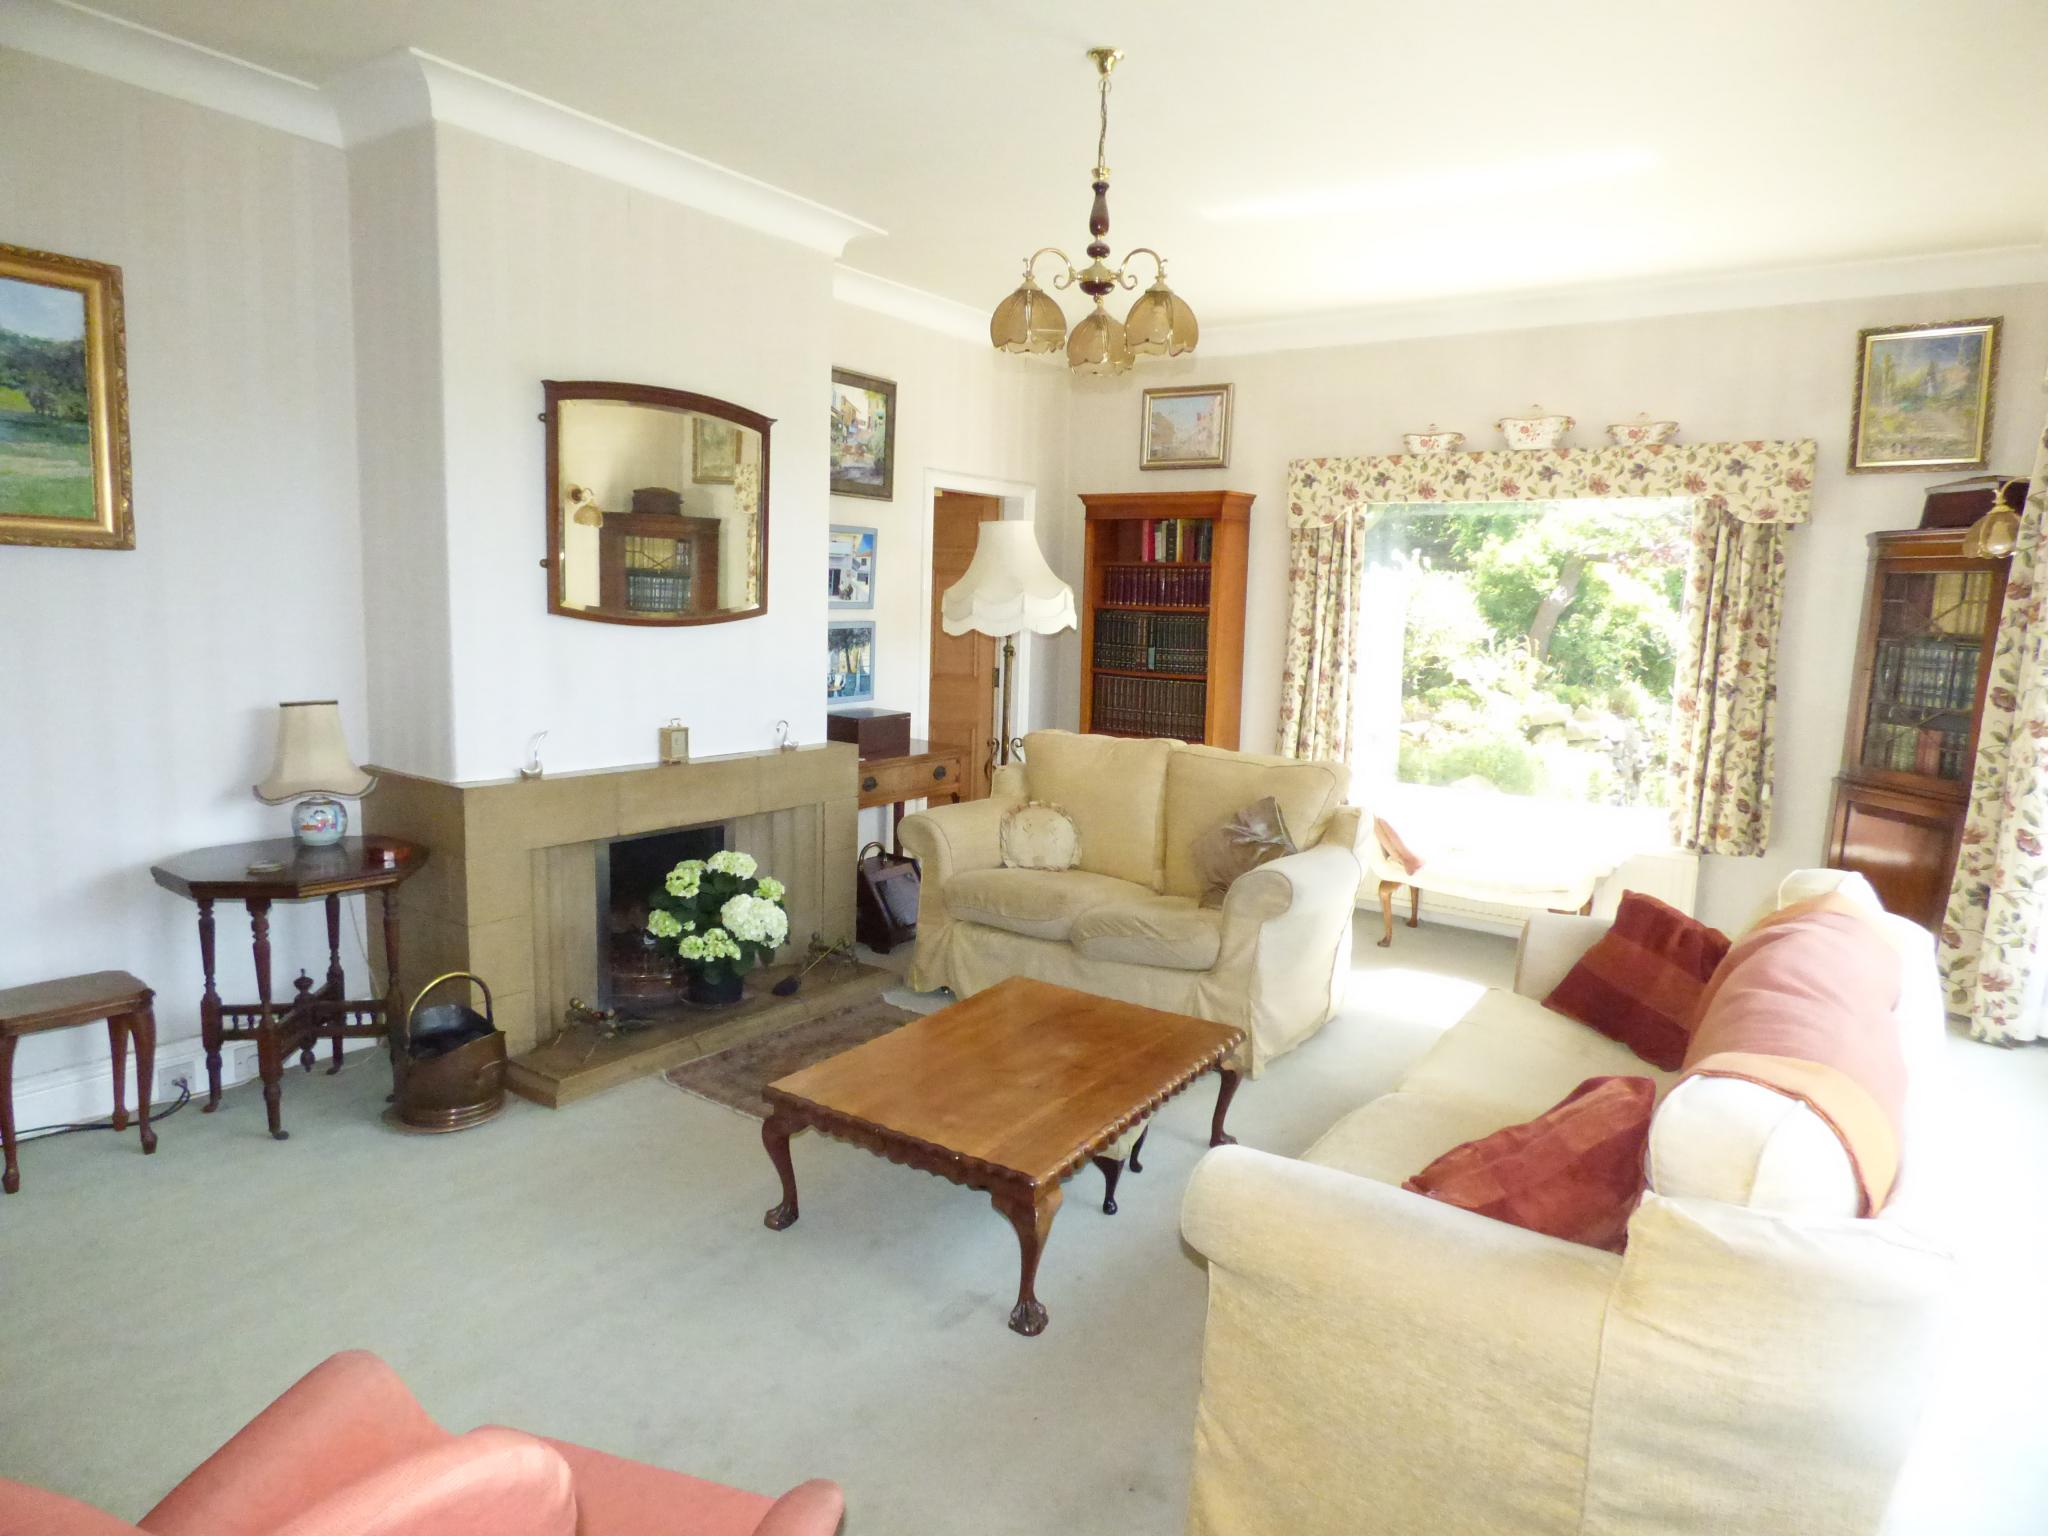 7 Bedroom Detached House For Sale - Photograph 27